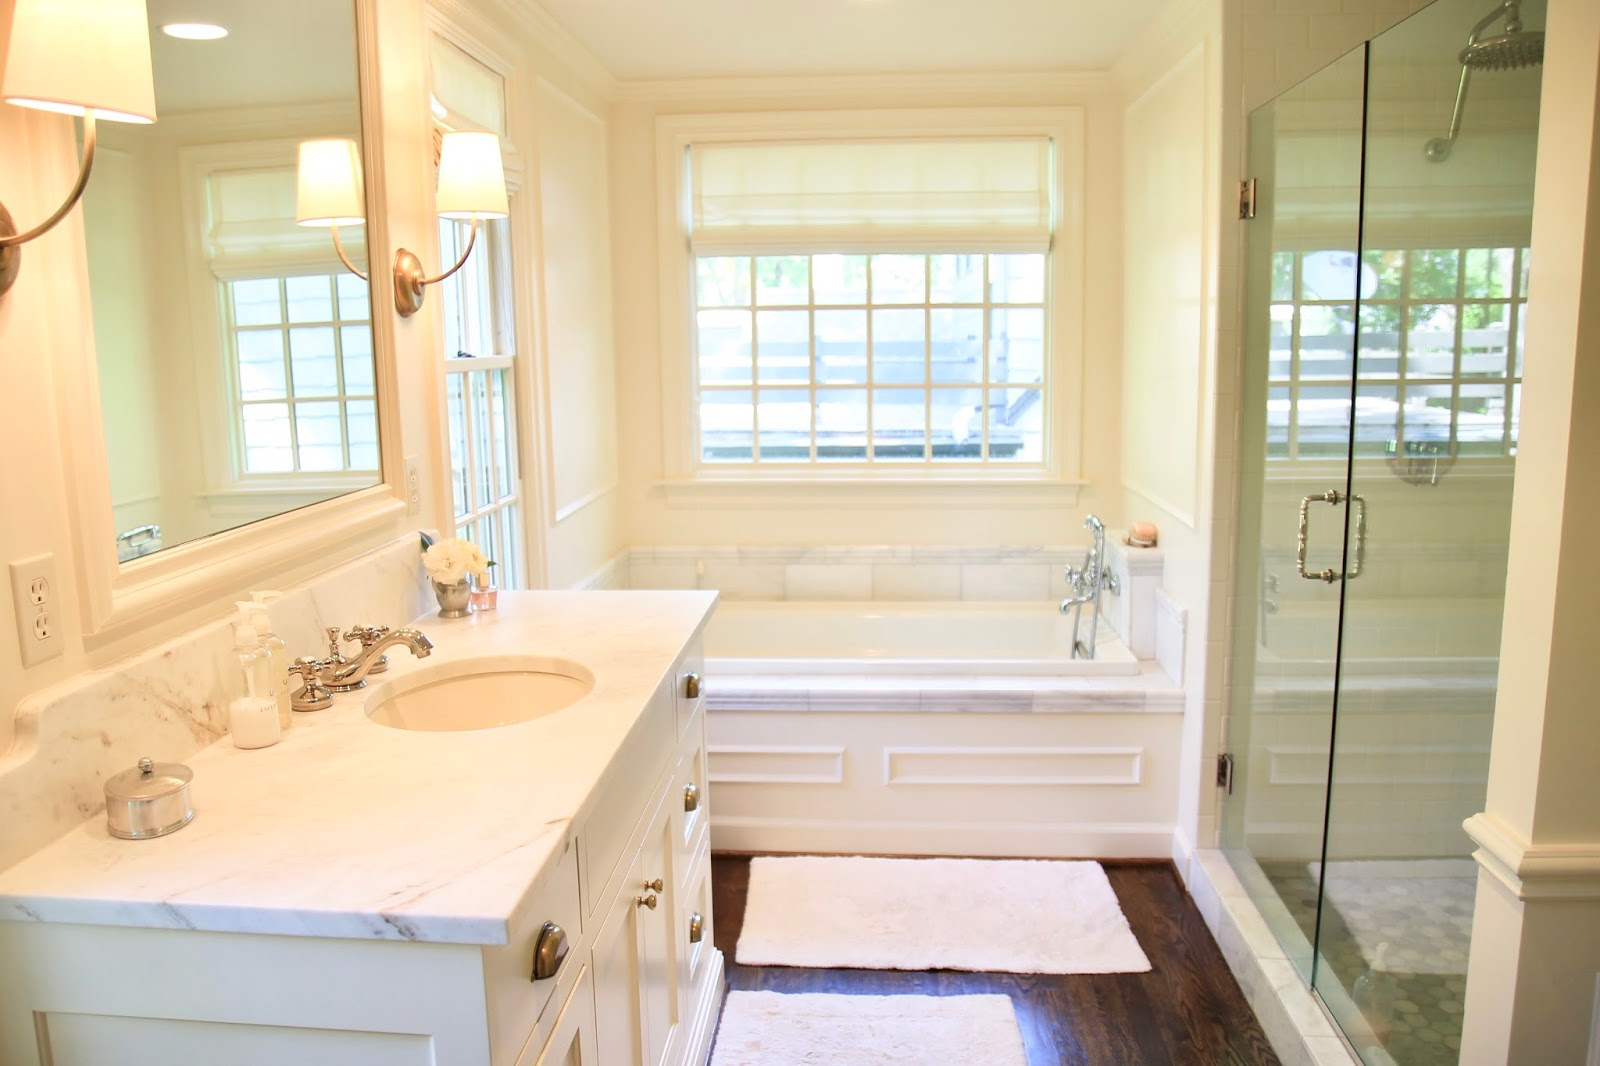 Adding a bathroom cost - Adding Lots Of Windows And Natural Light Were Essential To Our Design It Is Not That Large Of A Bathroom So The Large Beautiful Windows Really Make It